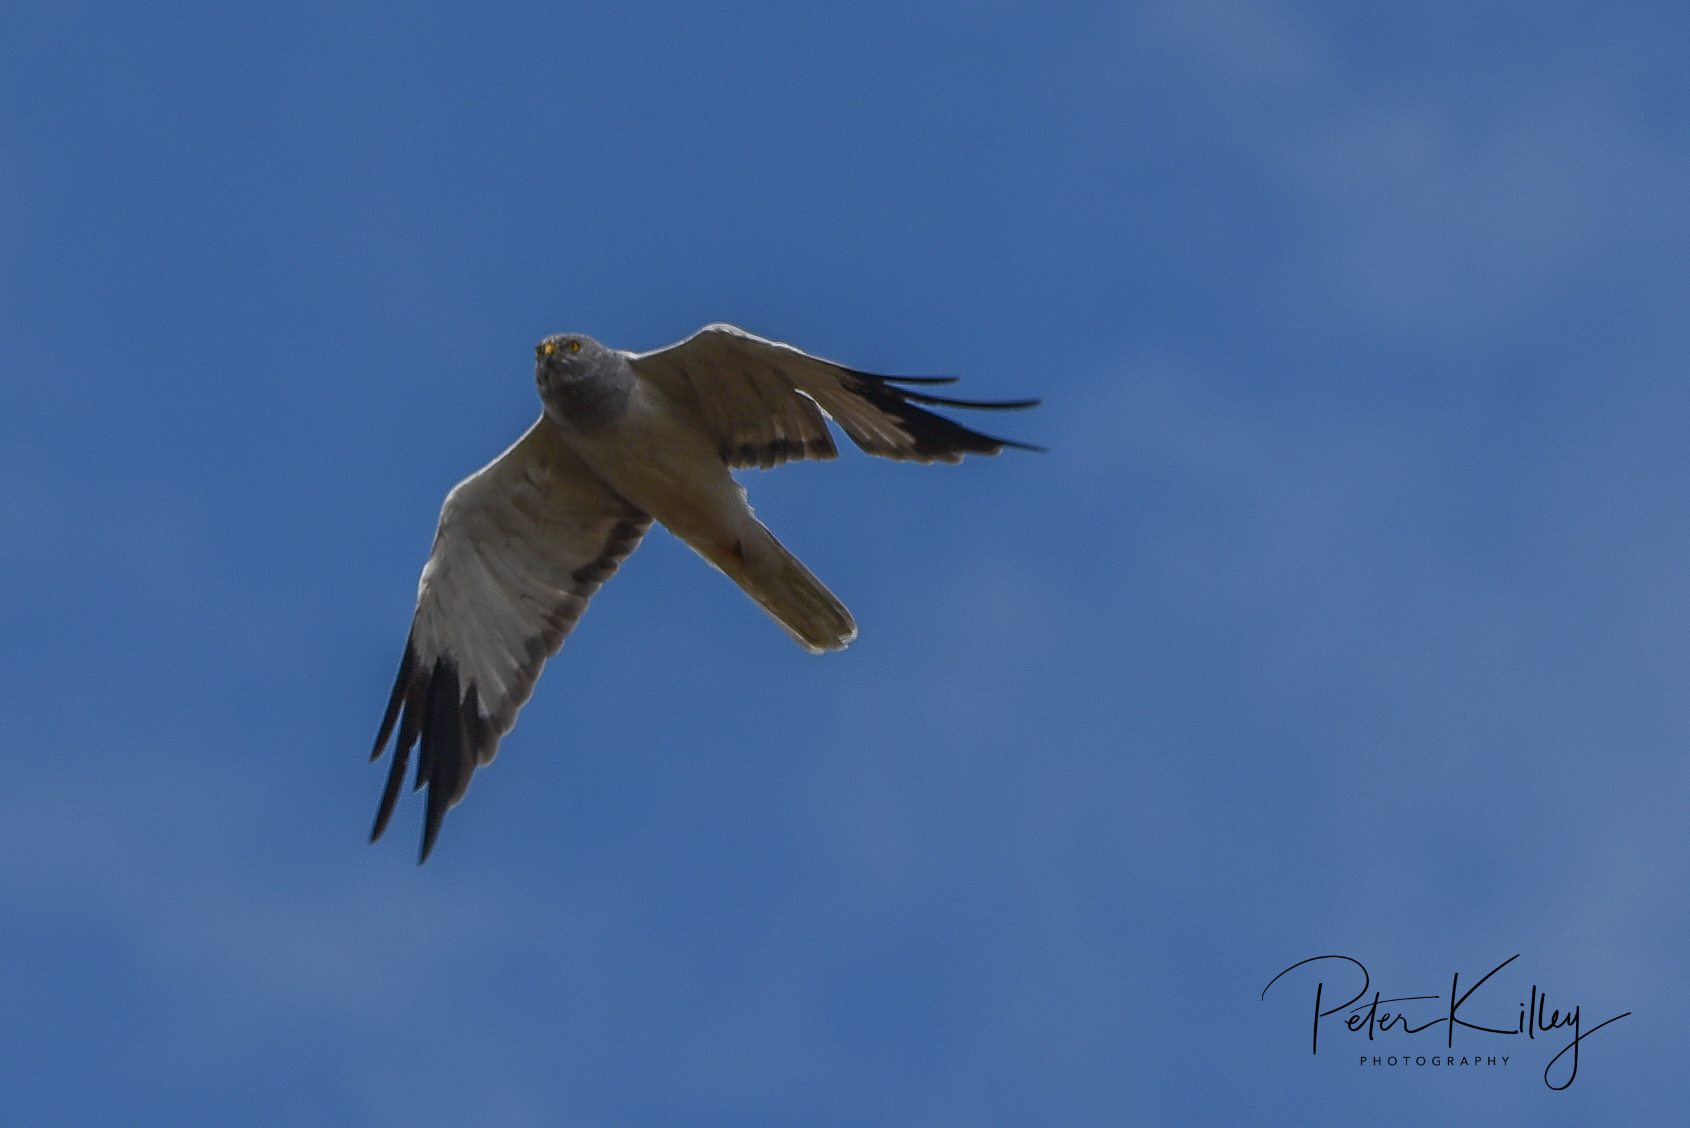 Hen Harrier (Peter Killey)